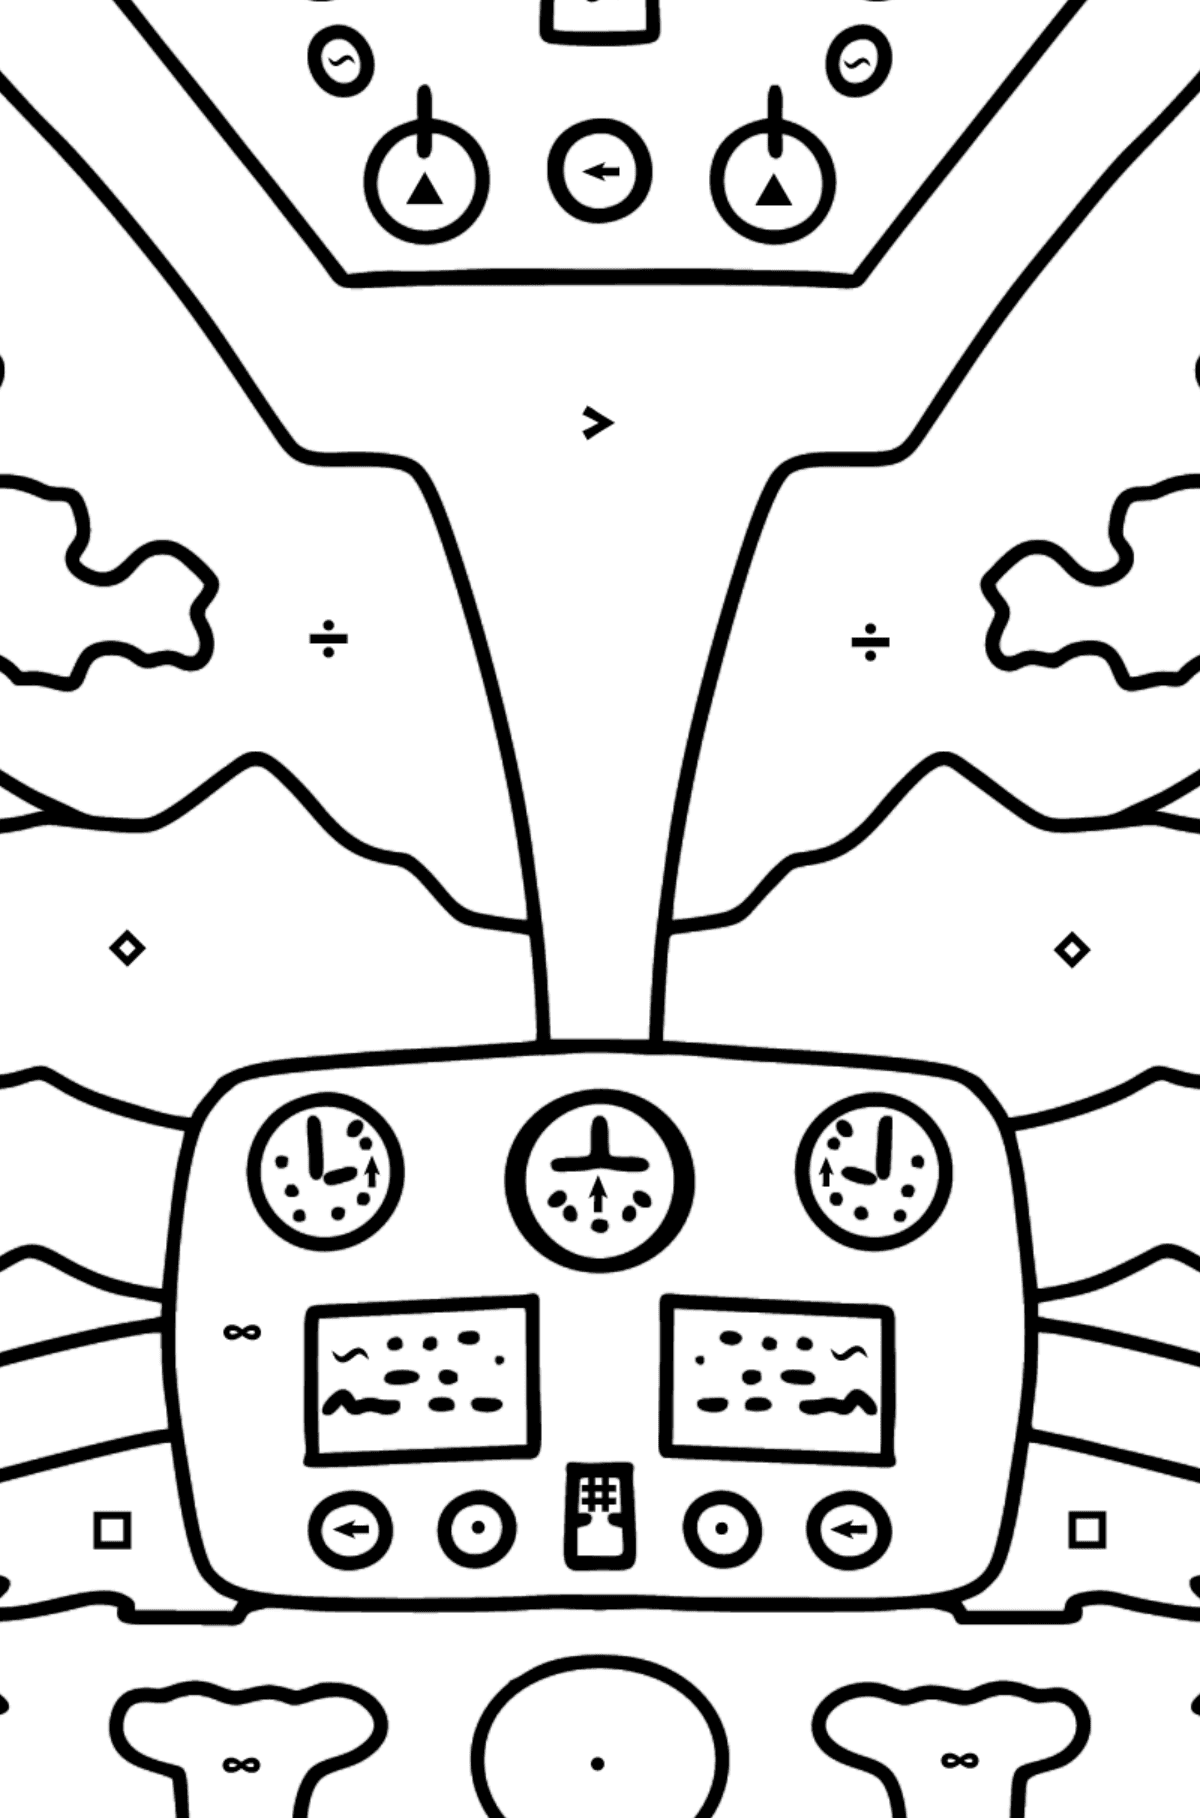 Helicopter Wheel coloring page - Coloring by Symbols for Kids